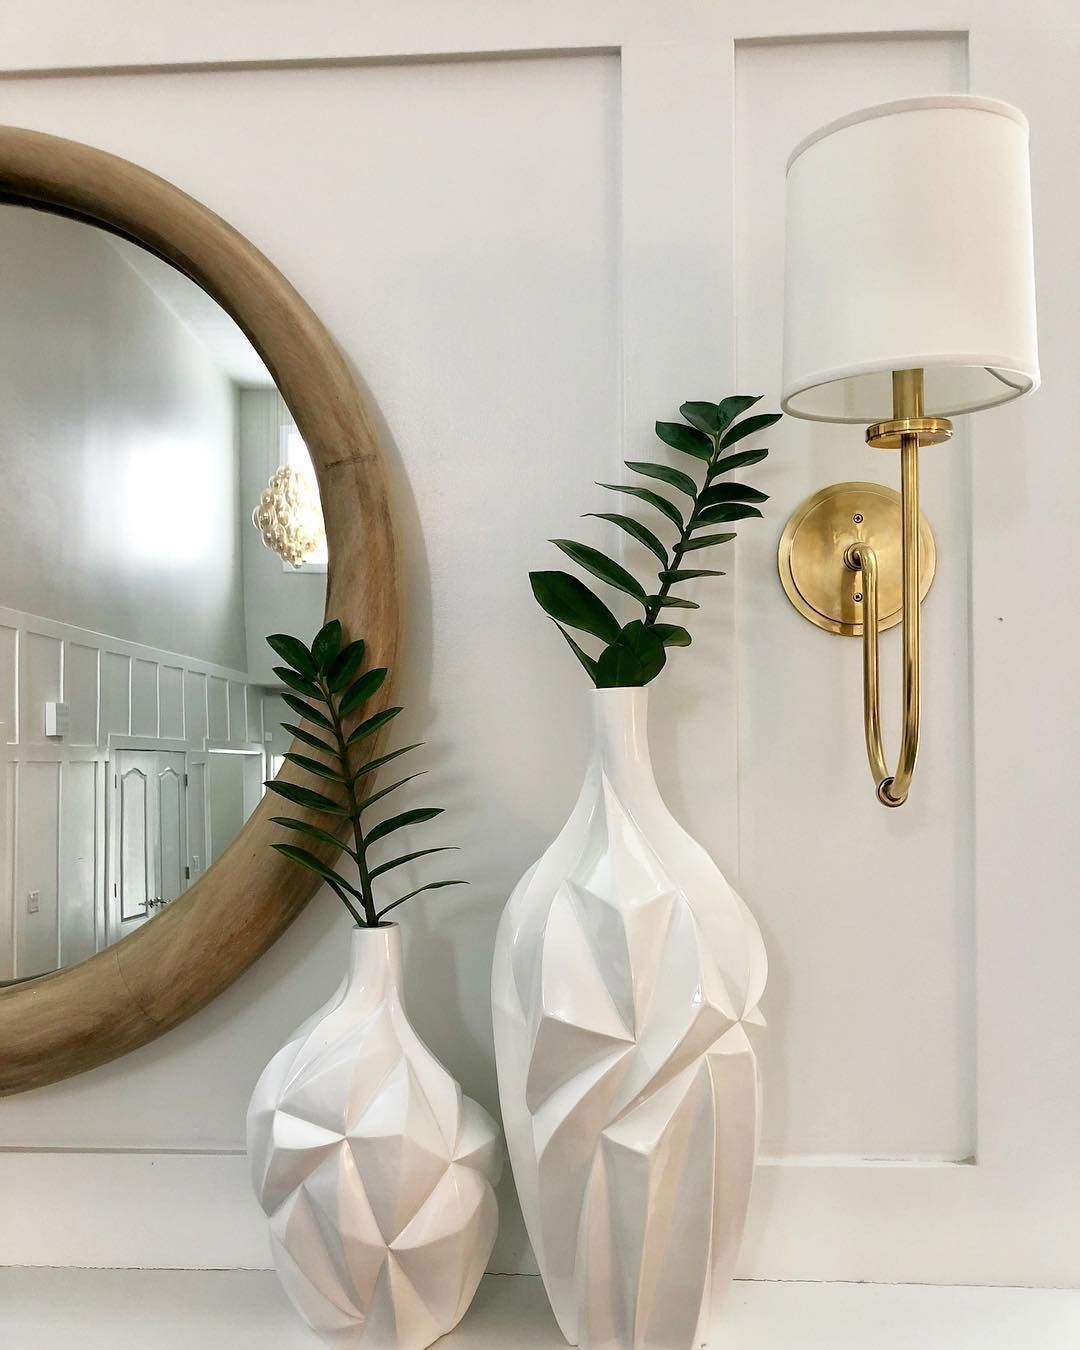 Hudson Valley Lighting On Instagram Beautiful White Vases Our Jericho Sconce Create A Tranquil Space Repost Mylightingsour Home Decor Decor White Vases